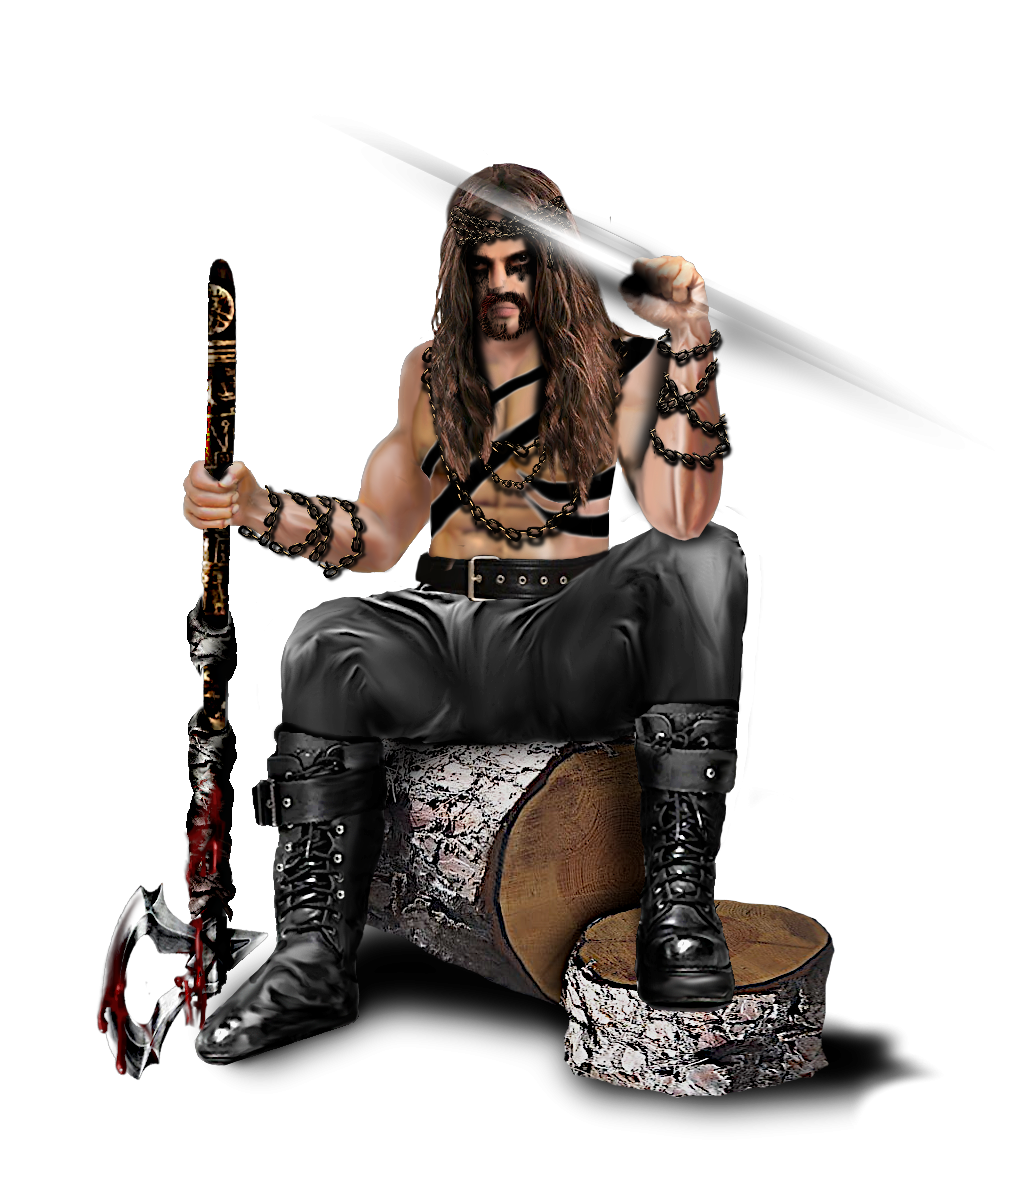 Heavy Metal Guy, No Background